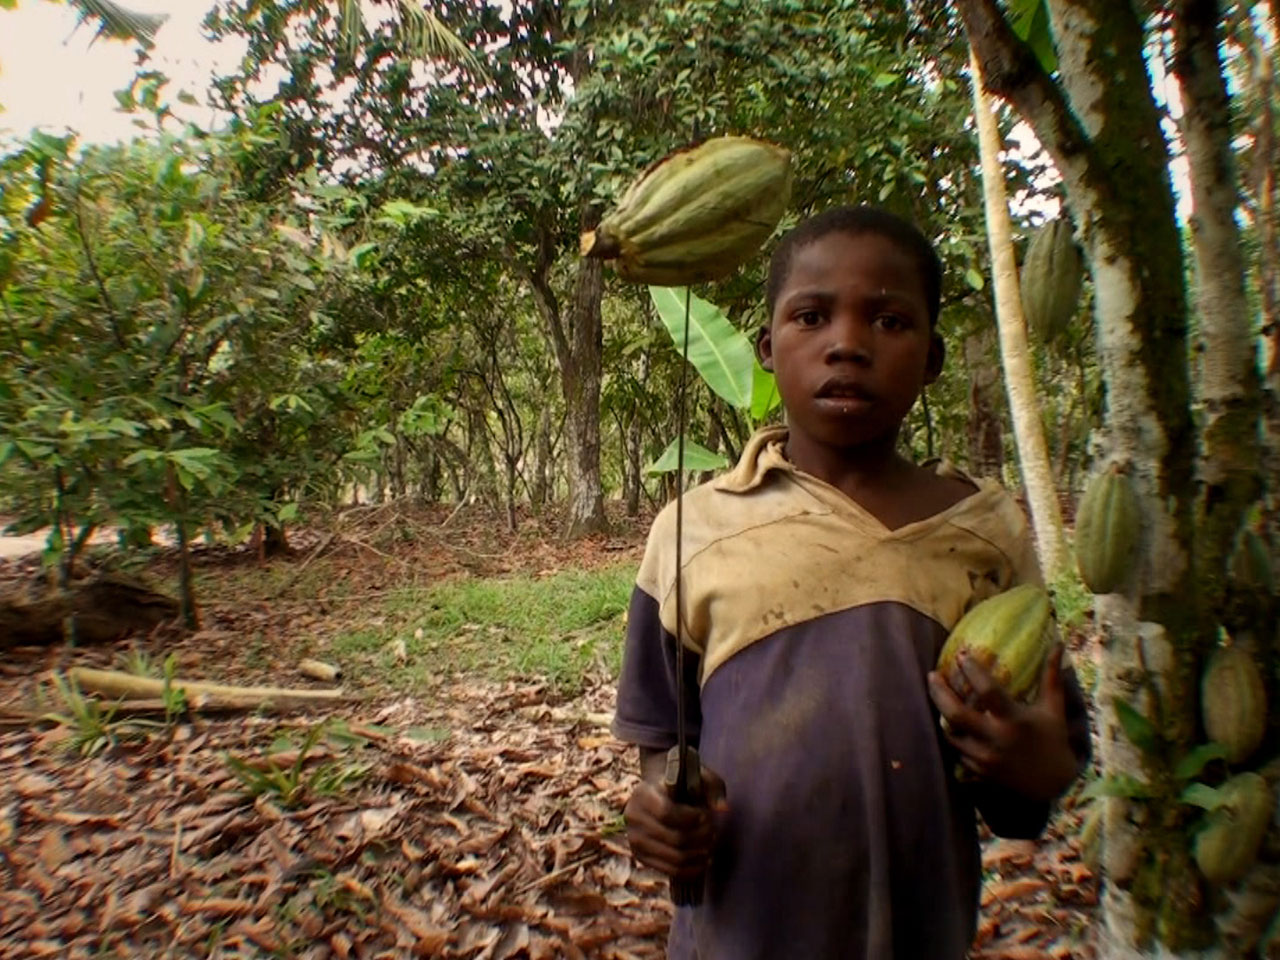 child labor in cocoa production and Two of the world's leaders in cocoa production, ghana and the ivory coast have signed an agreement to fight against child labour in cocoa production.